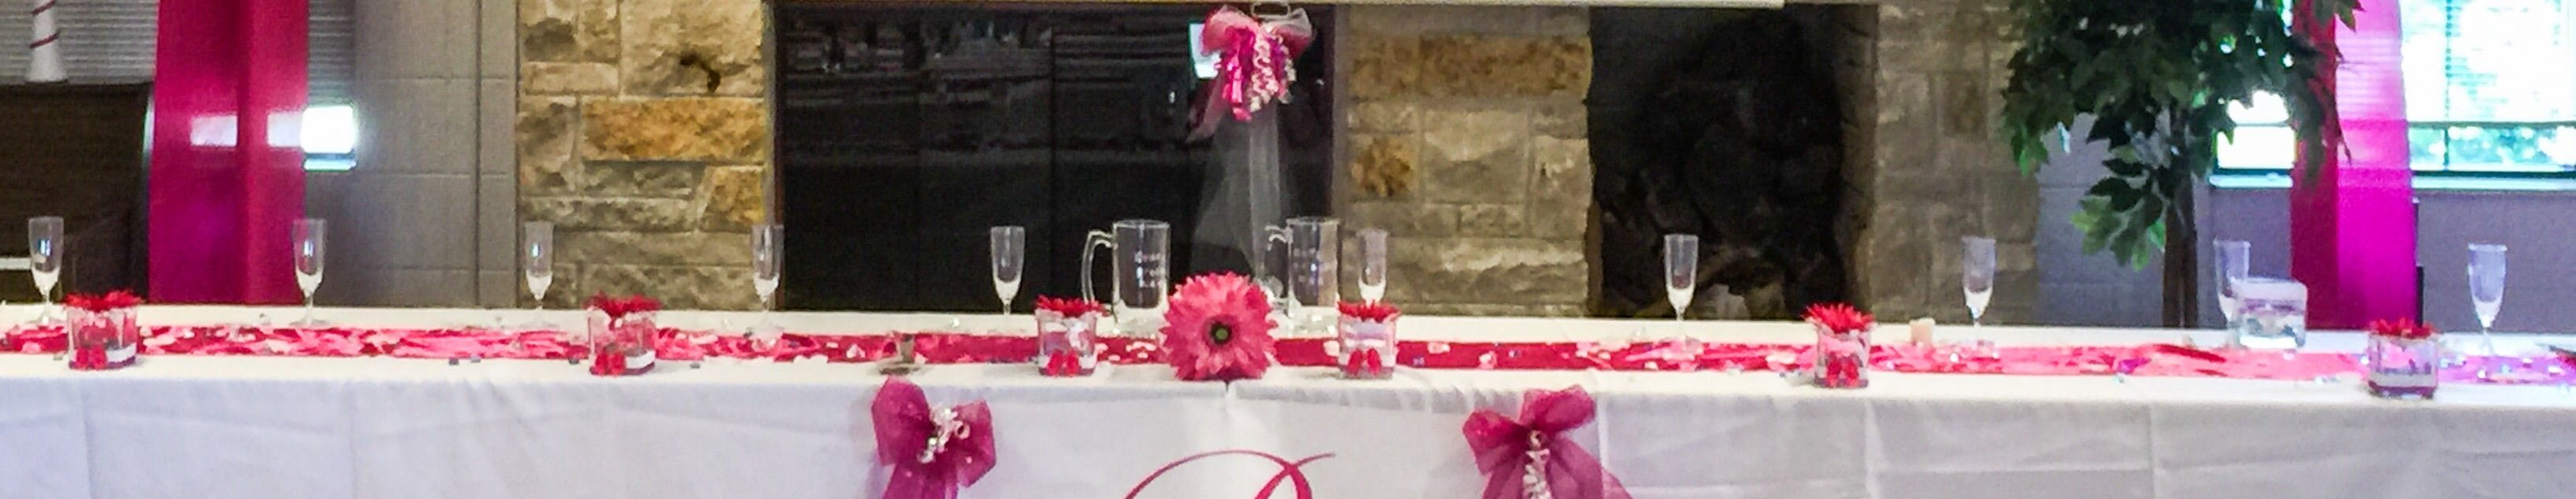 Adding pink and white candle holders and pink tulle bows adds just the right amount of glam!